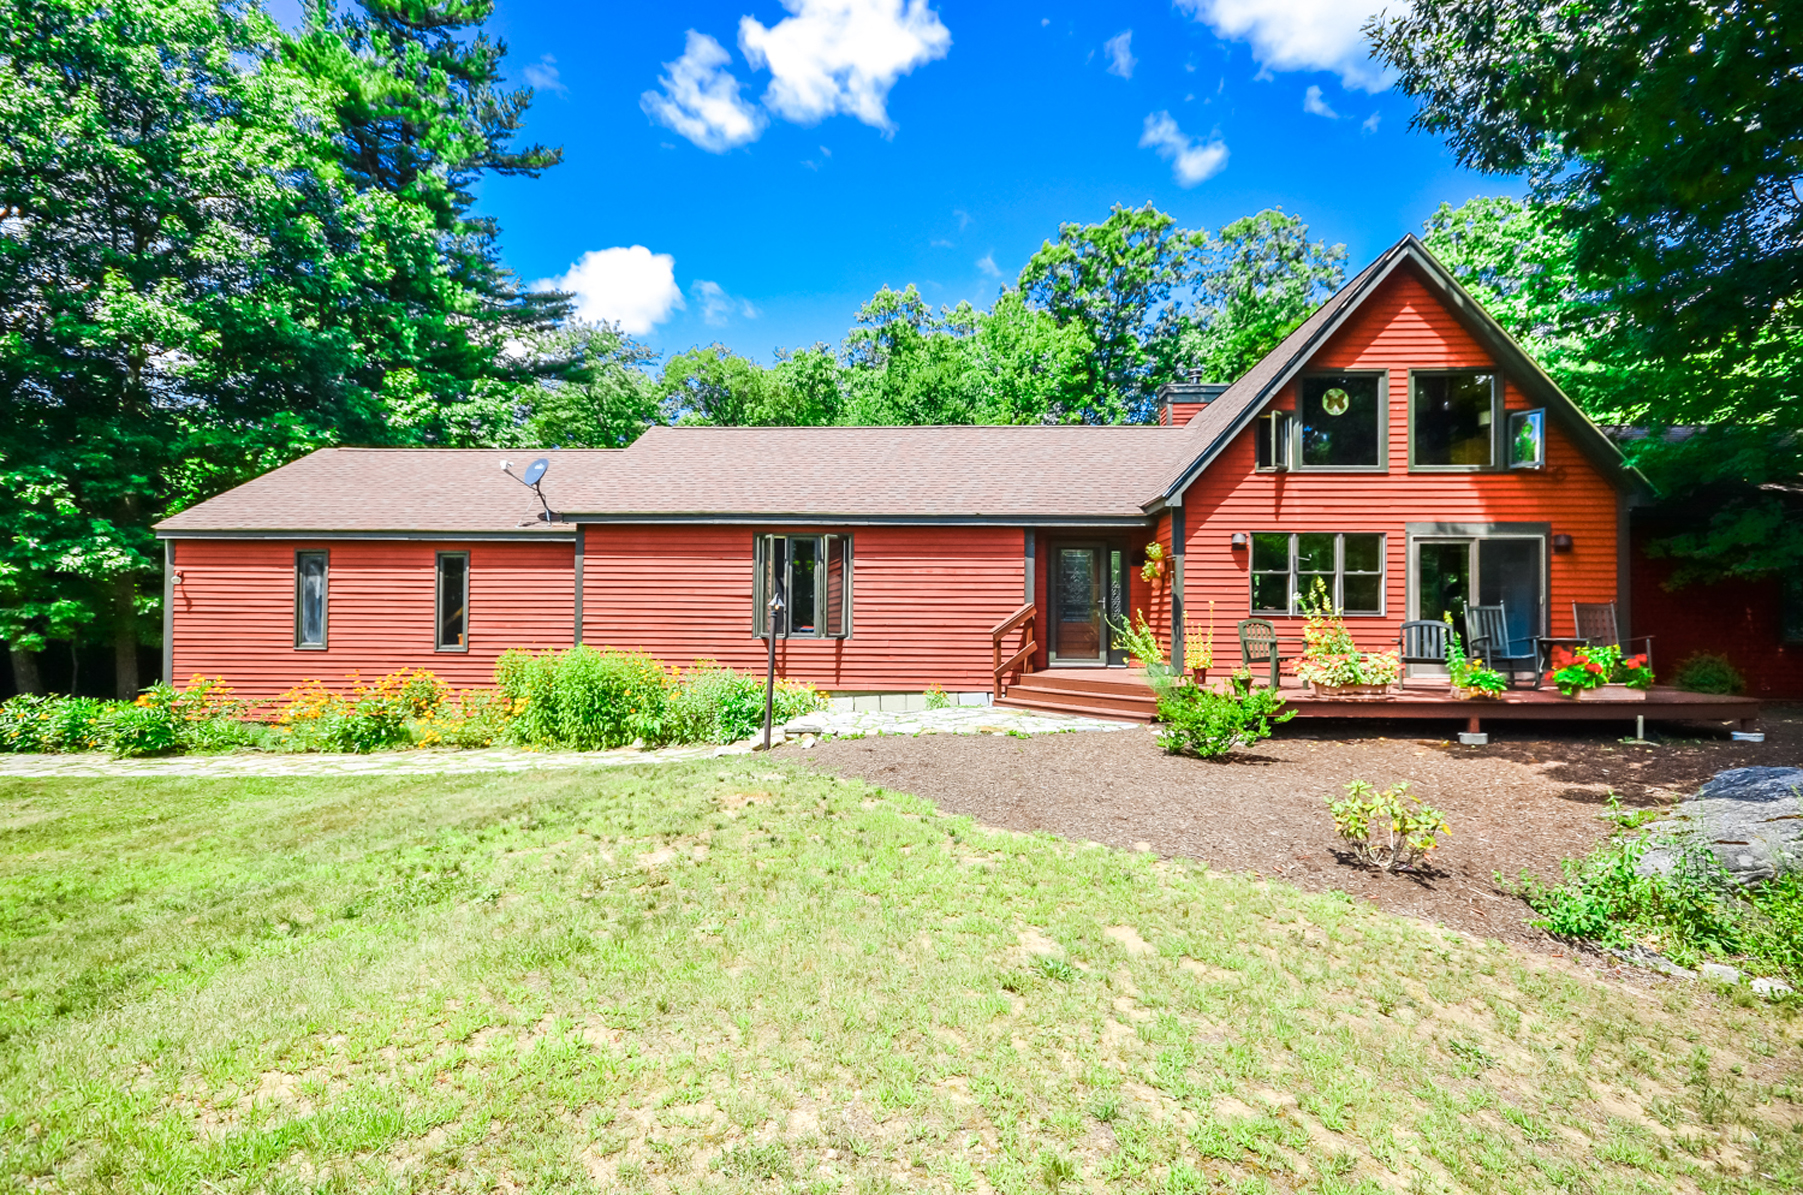 Single Family Home for Sale at 659 West Rd, Temple Temple, New Hampshire, 03084 United States